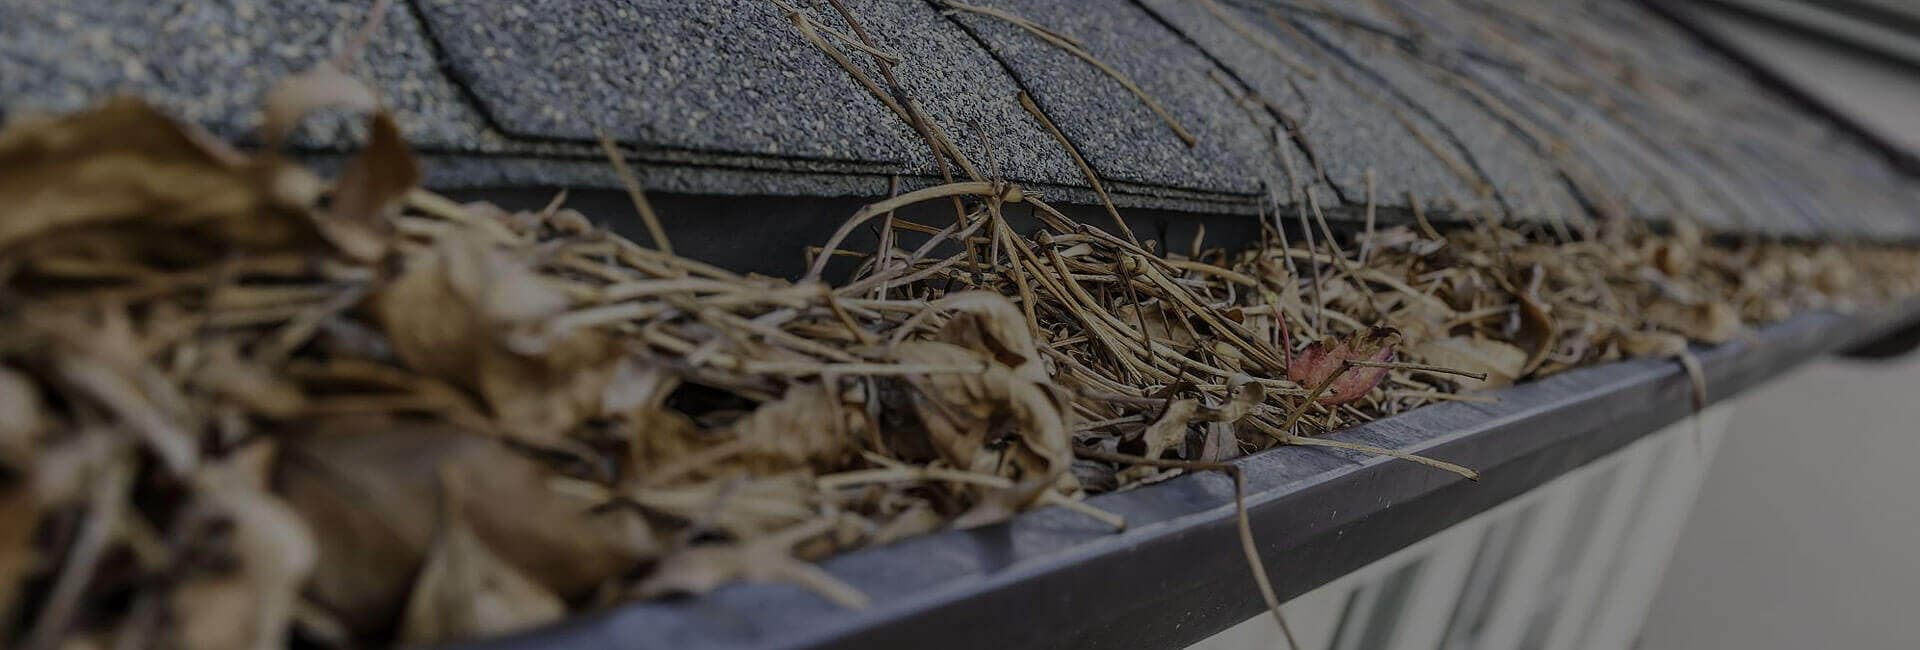 Gutter Cleaning In Weston Massachusetts From Hicleaners